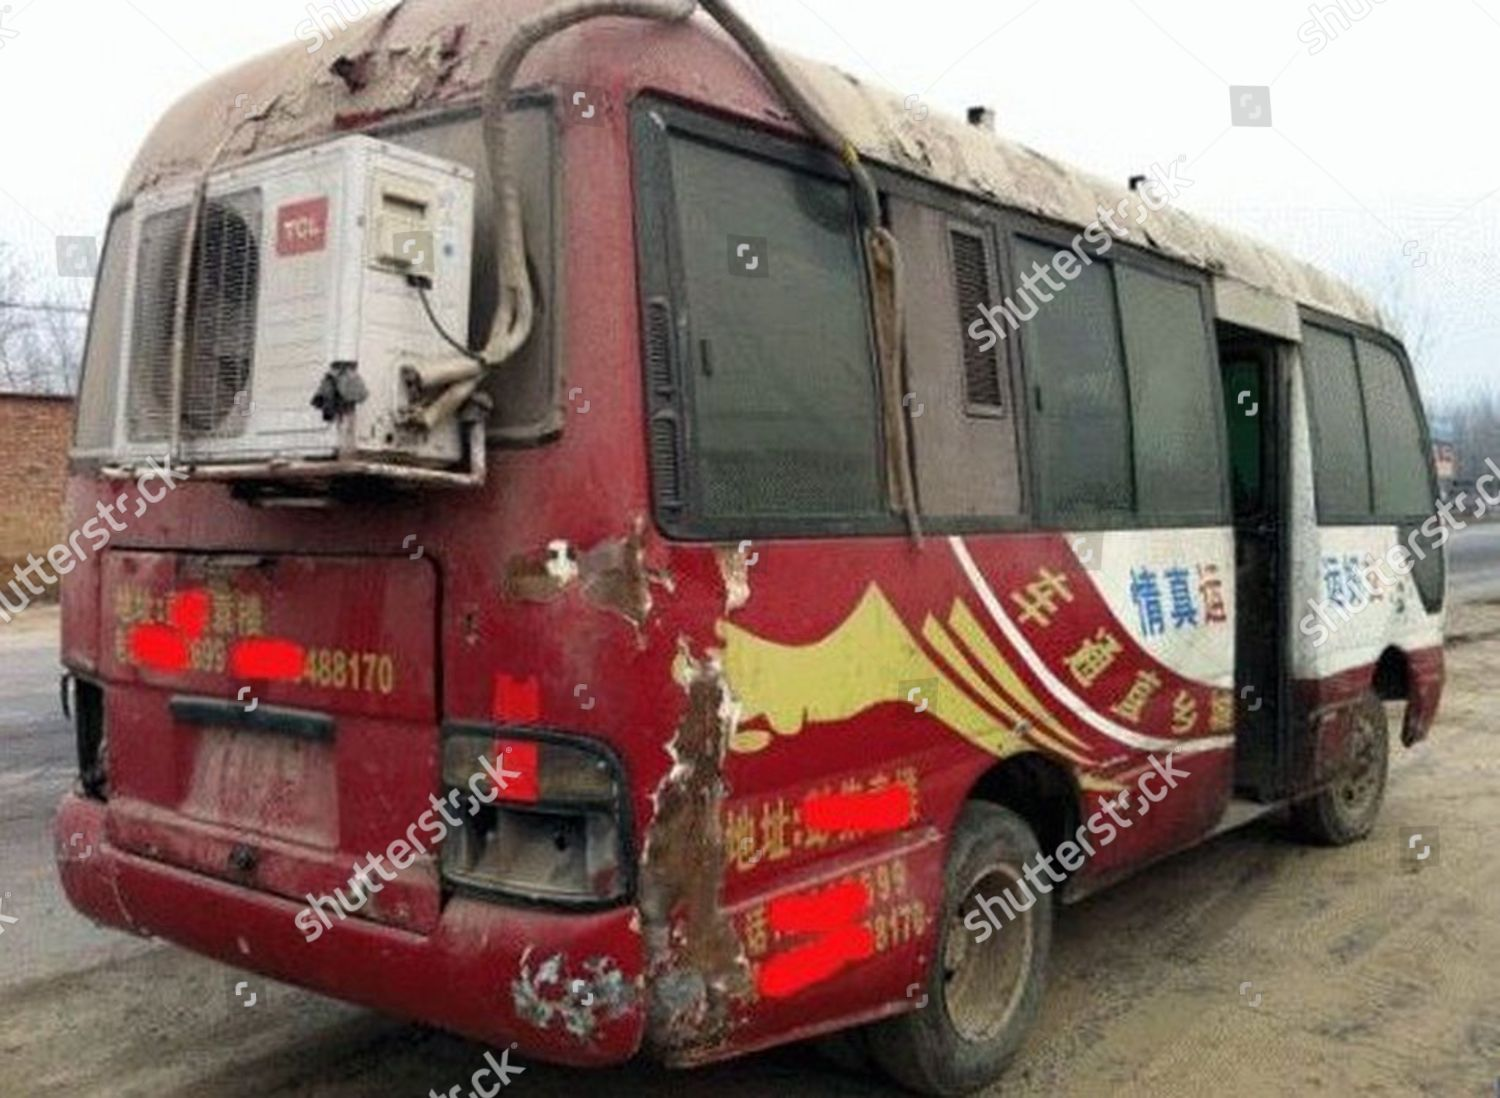 air conditioner on back battered bus Editorial Stock Photo - Stock